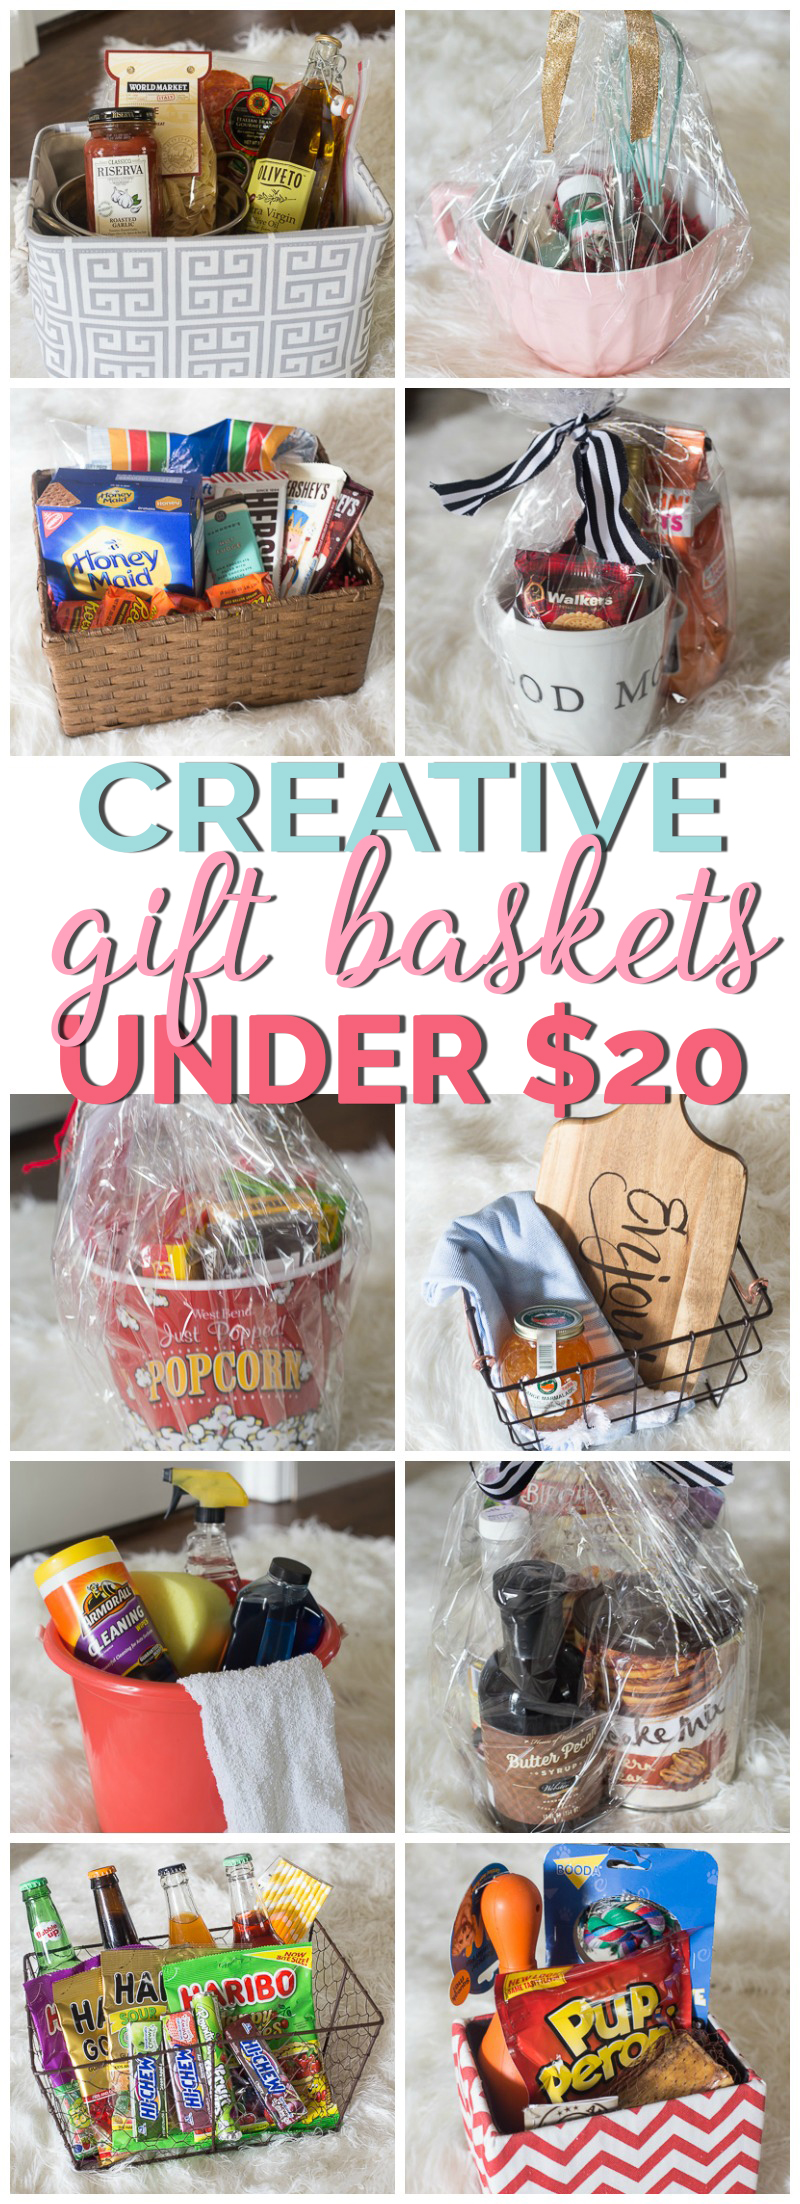 Creative Gift Basket Ideas Under $20